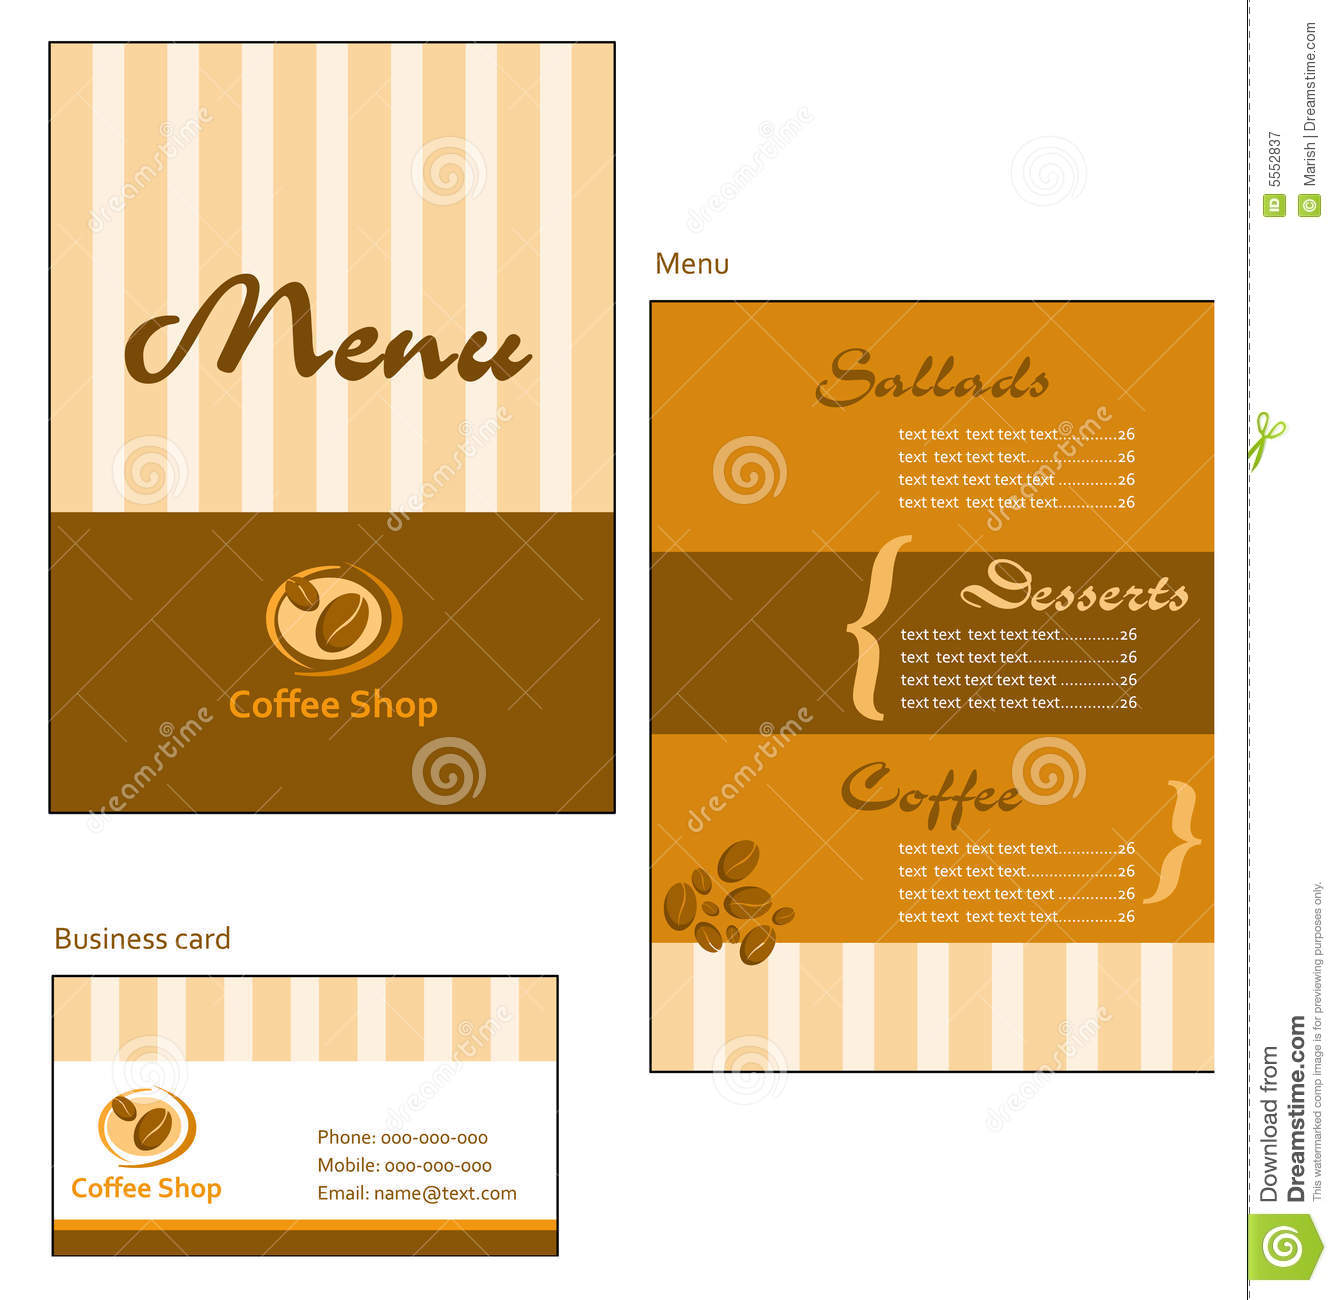 Template designs of menu and business card for cof stock vector download comp flashek Choice Image